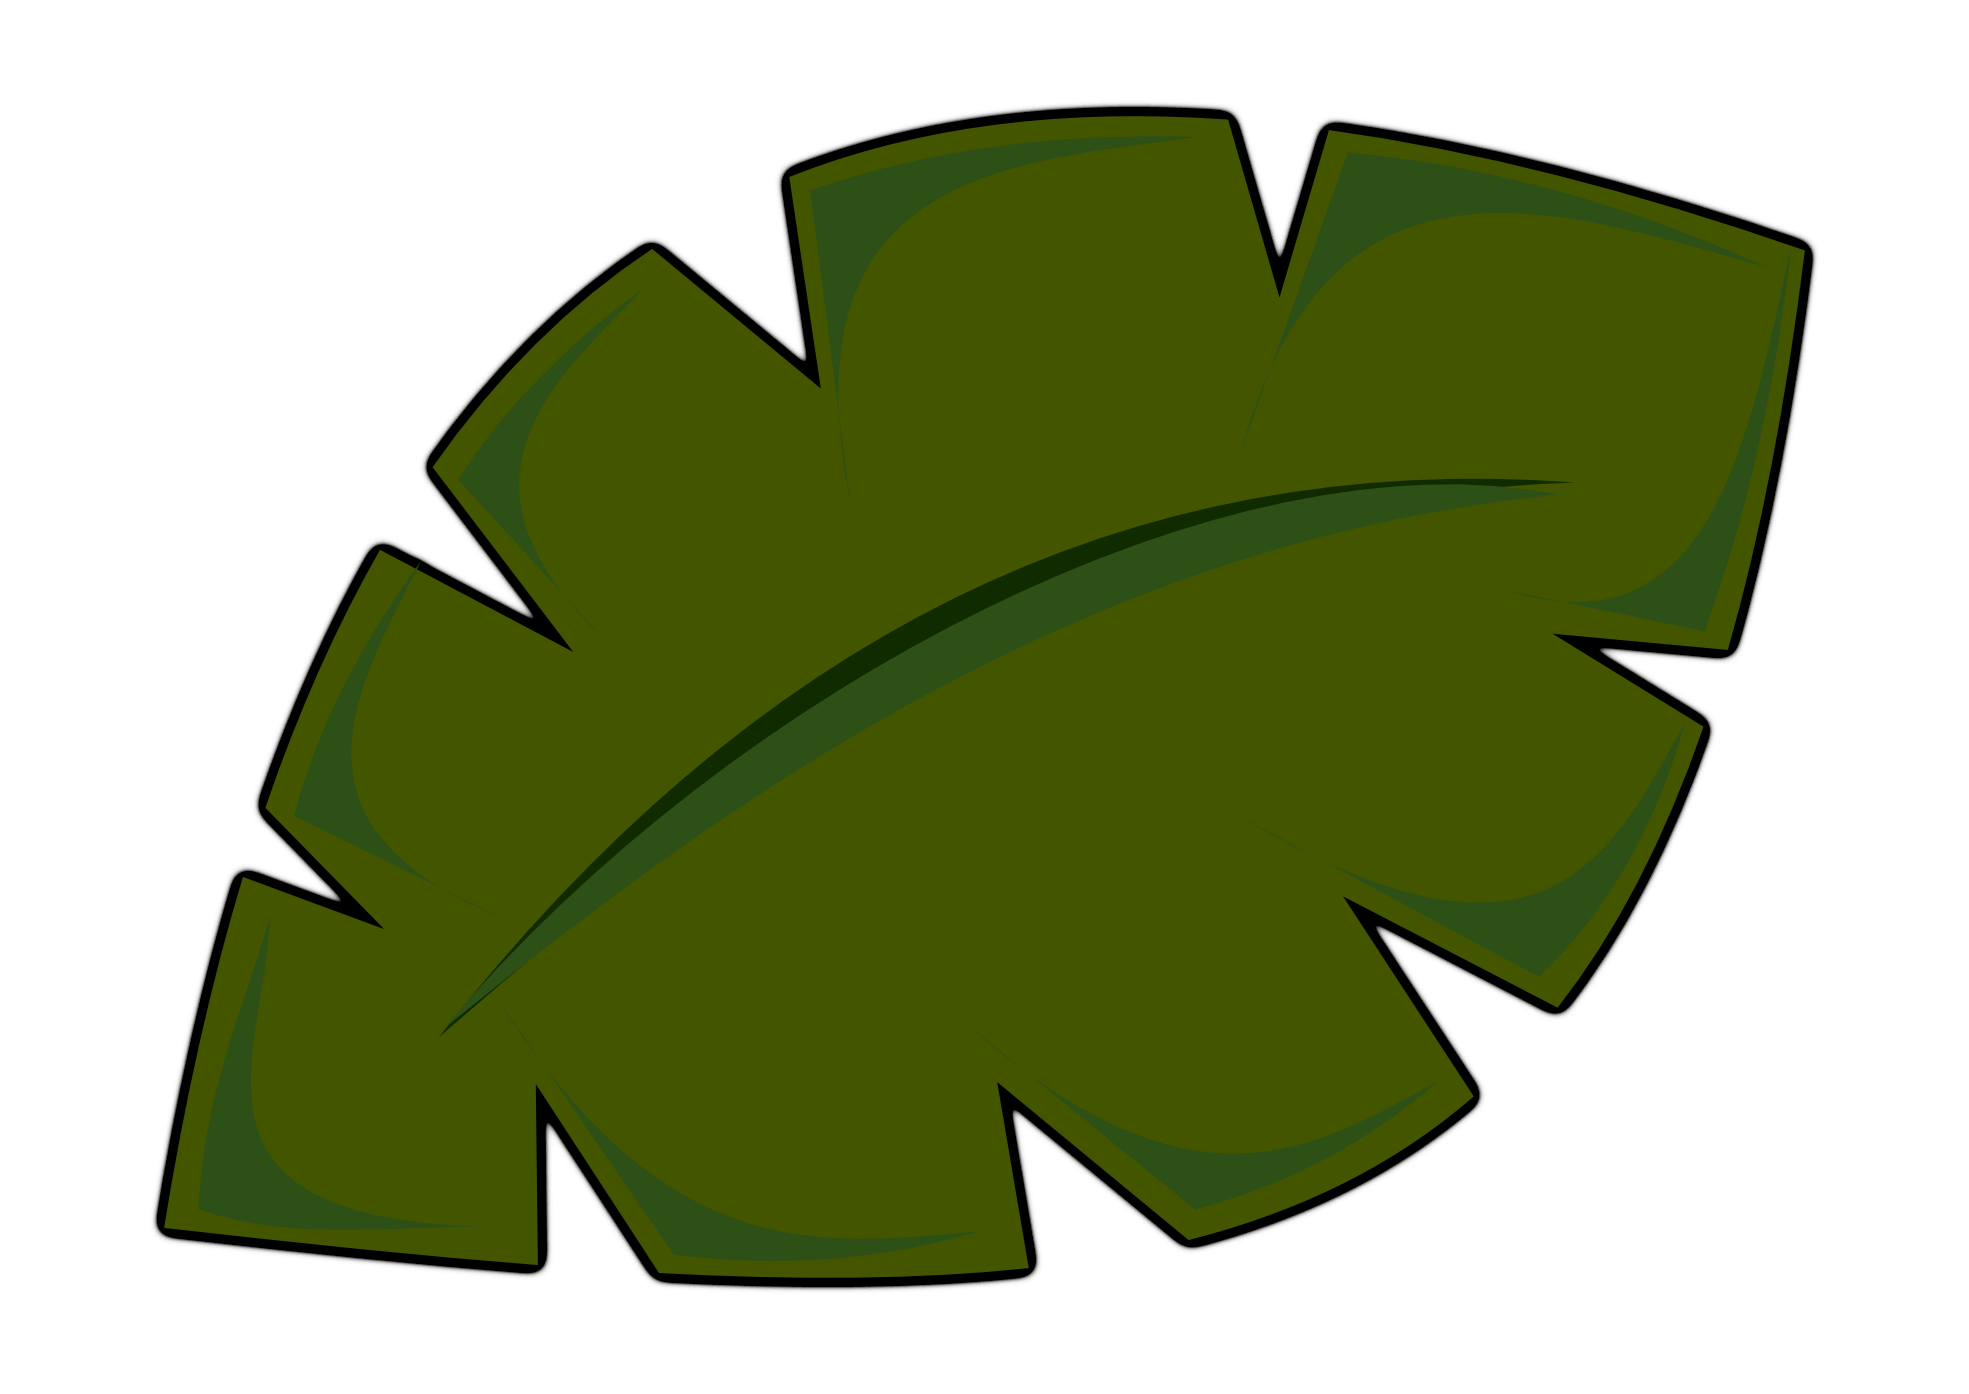 leaf clipart coconut tree